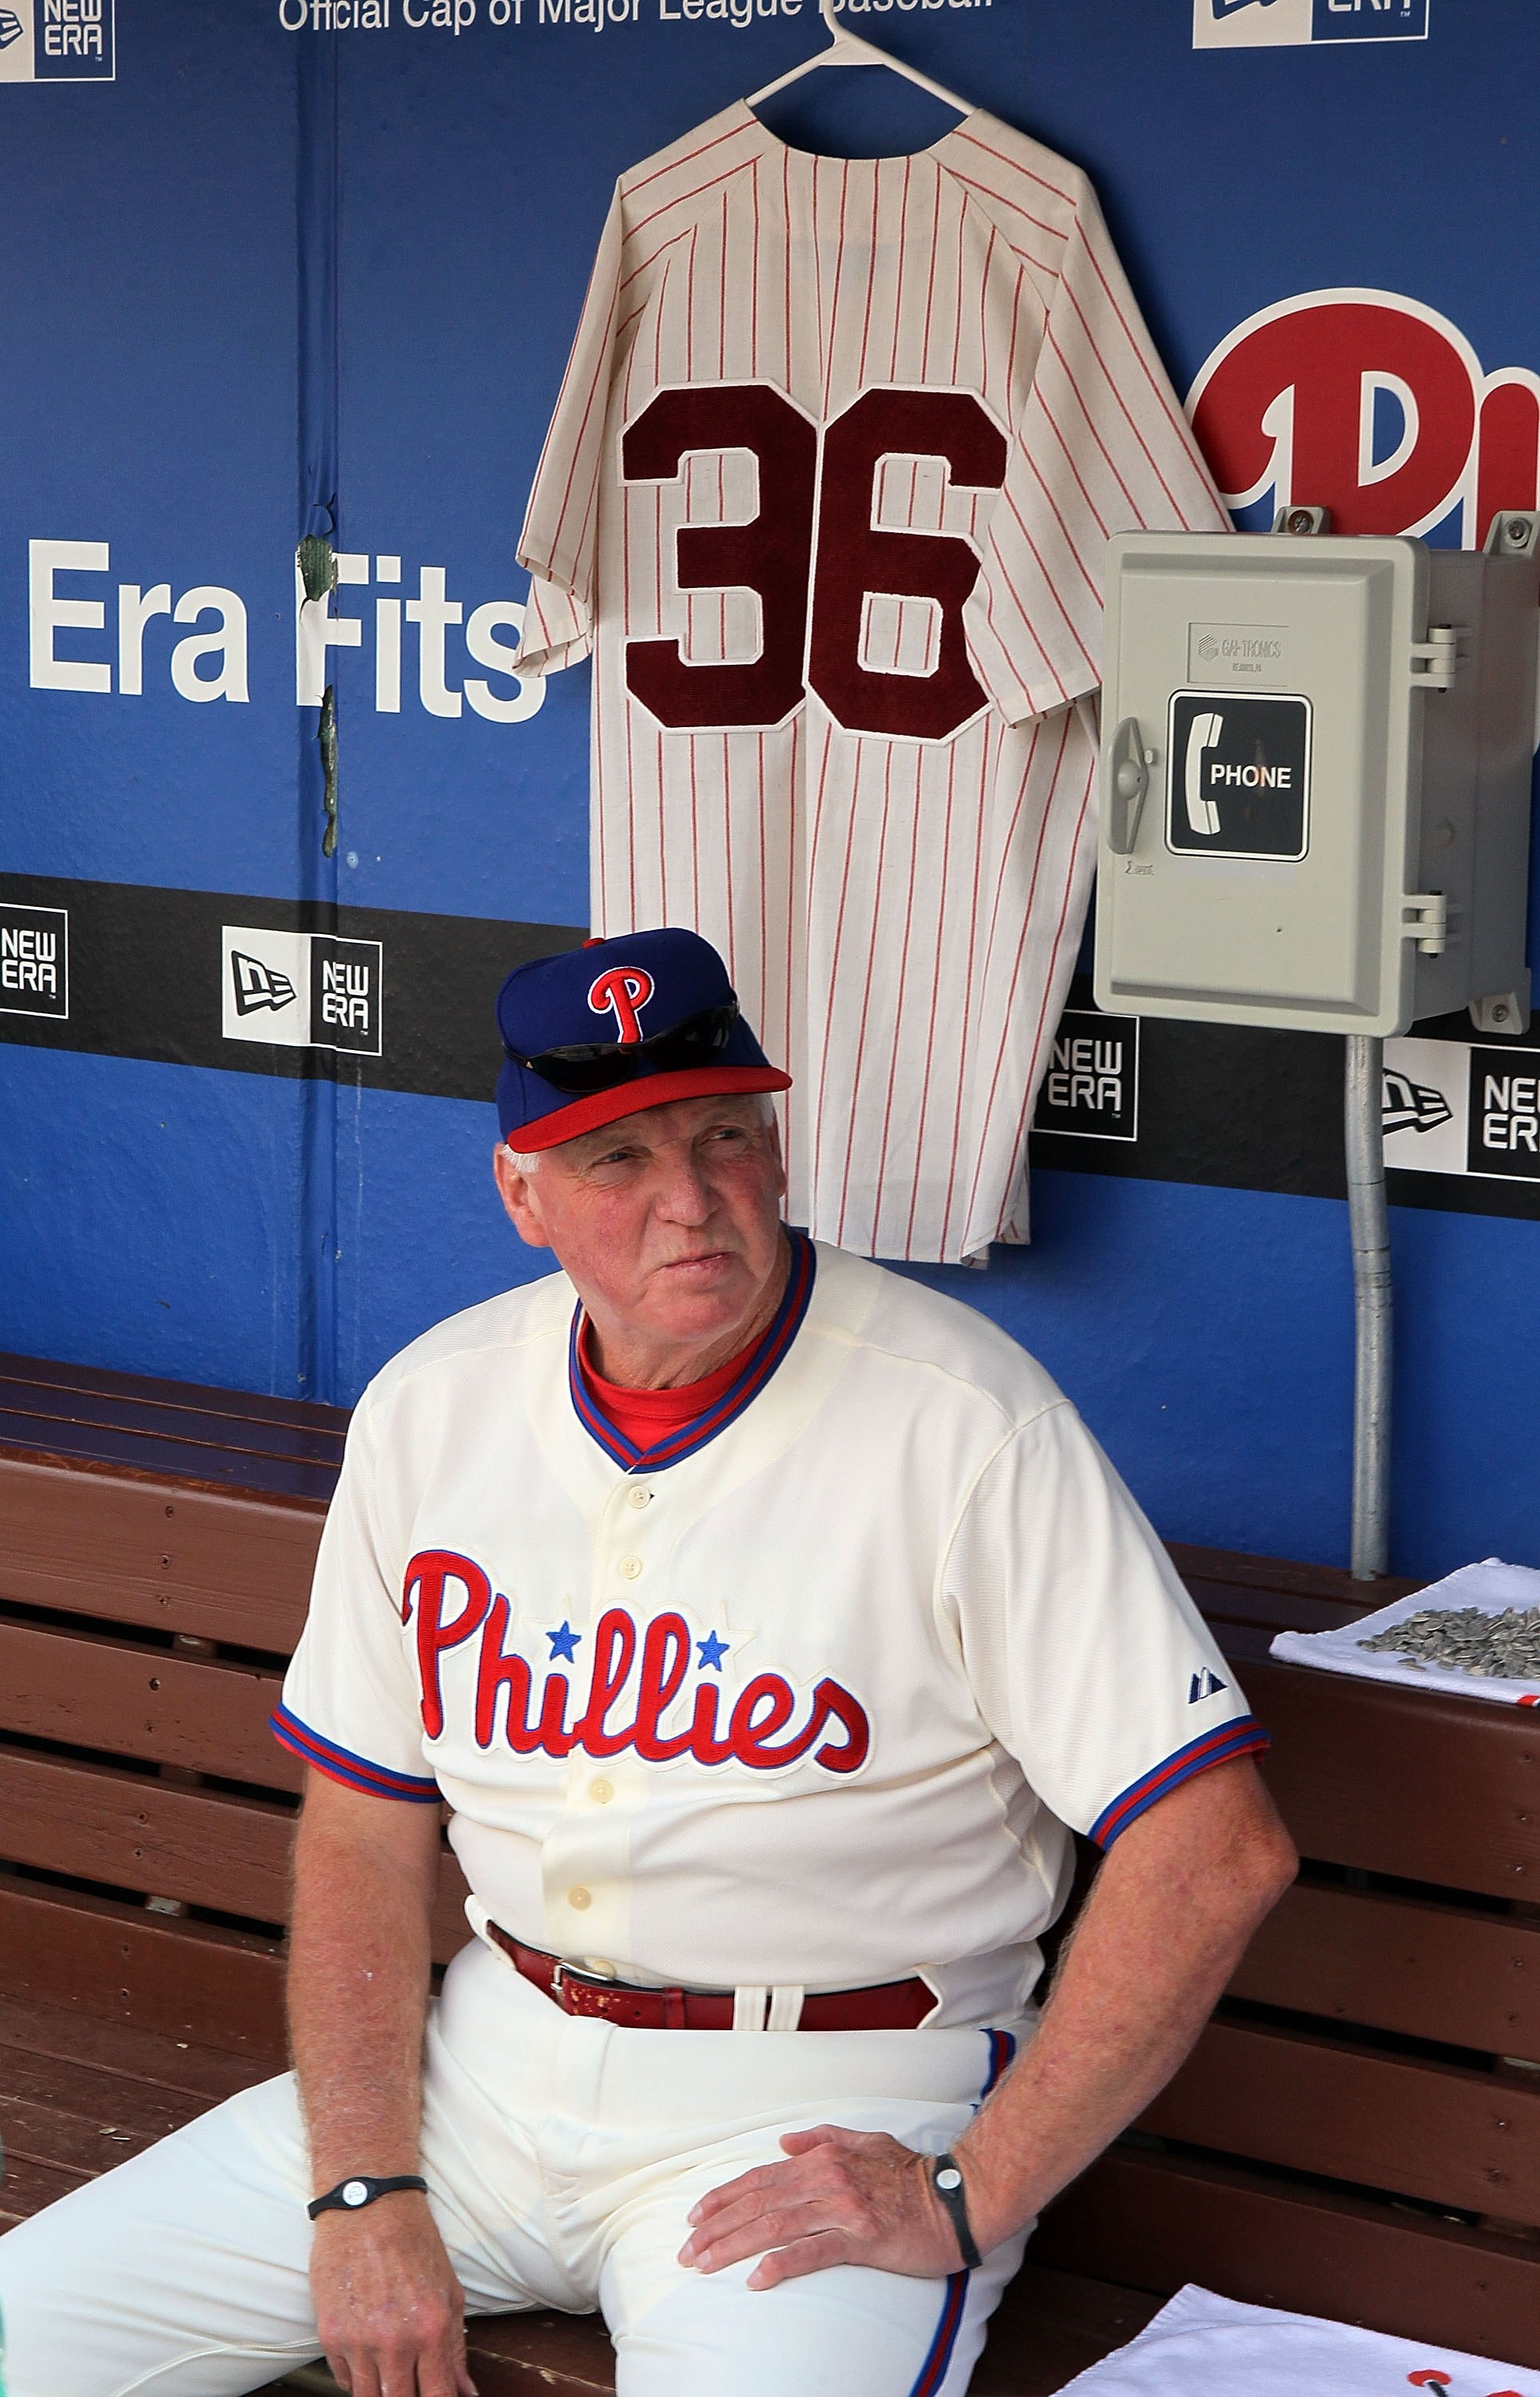 PHILADELPHIA - MAY 06:  Manager Charlie Manuel of the Philadelphia Phillies sits in the dugout next to a jersey of Phillies Hall of Fame pitcher Robin Roberts prior to playing the St. Louis Cardinals at Citizens Bank Park on May 6, 2010 in Philadelphia, P